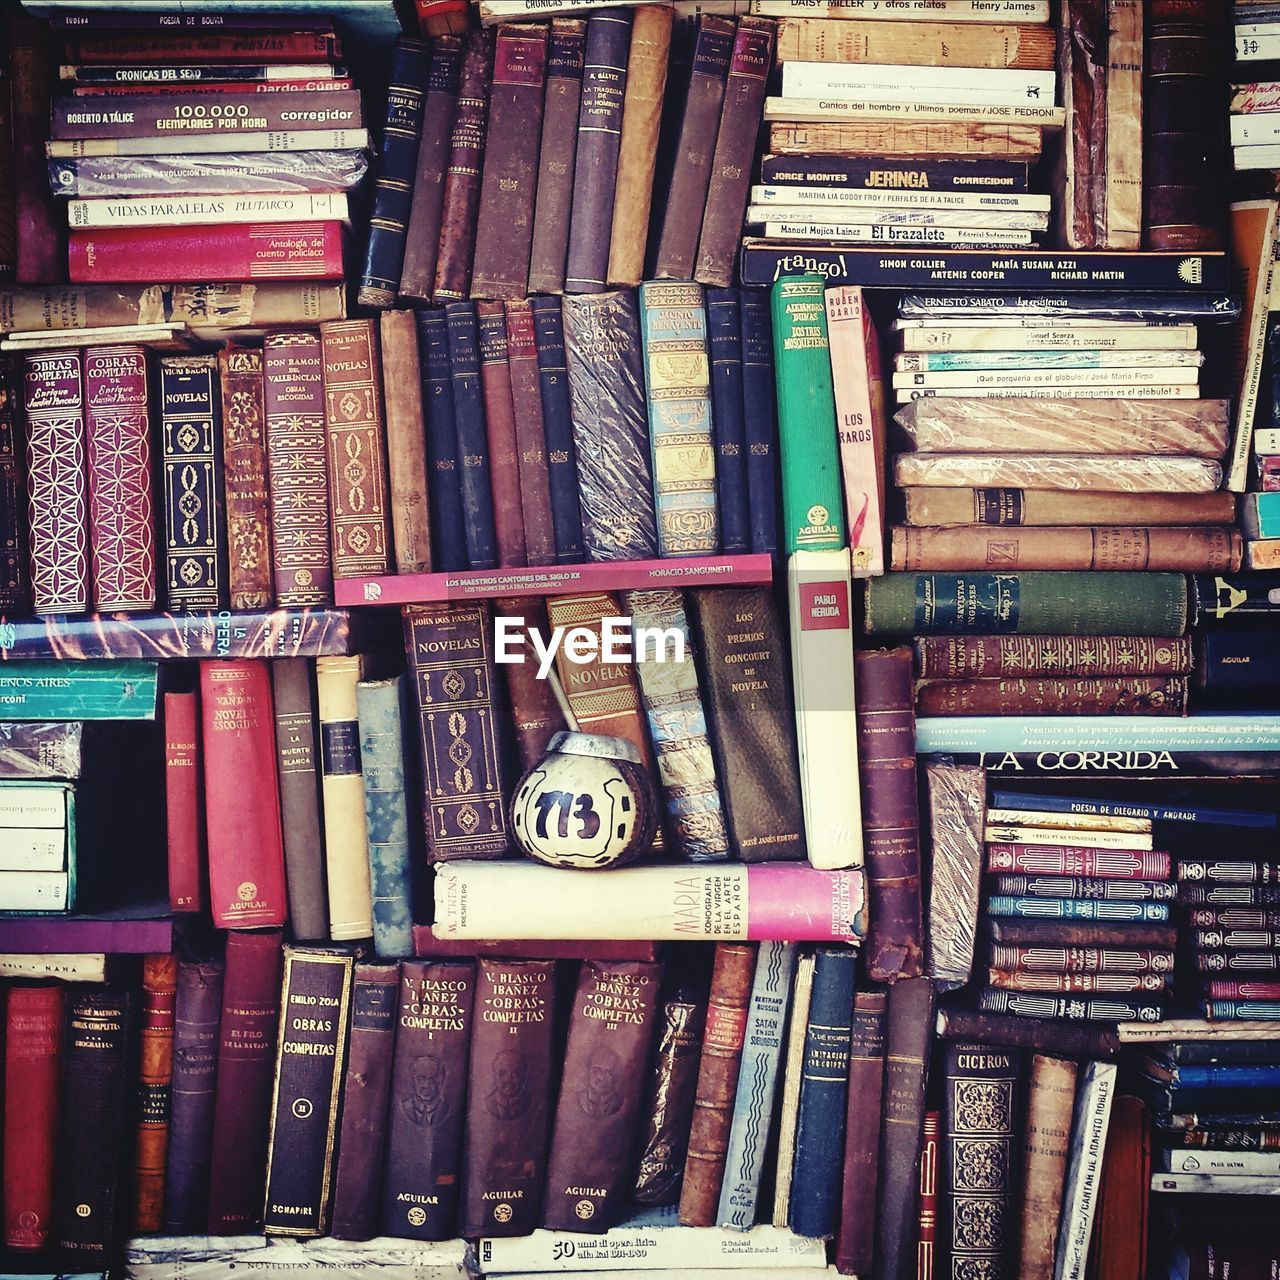 Old books stacked on shelf